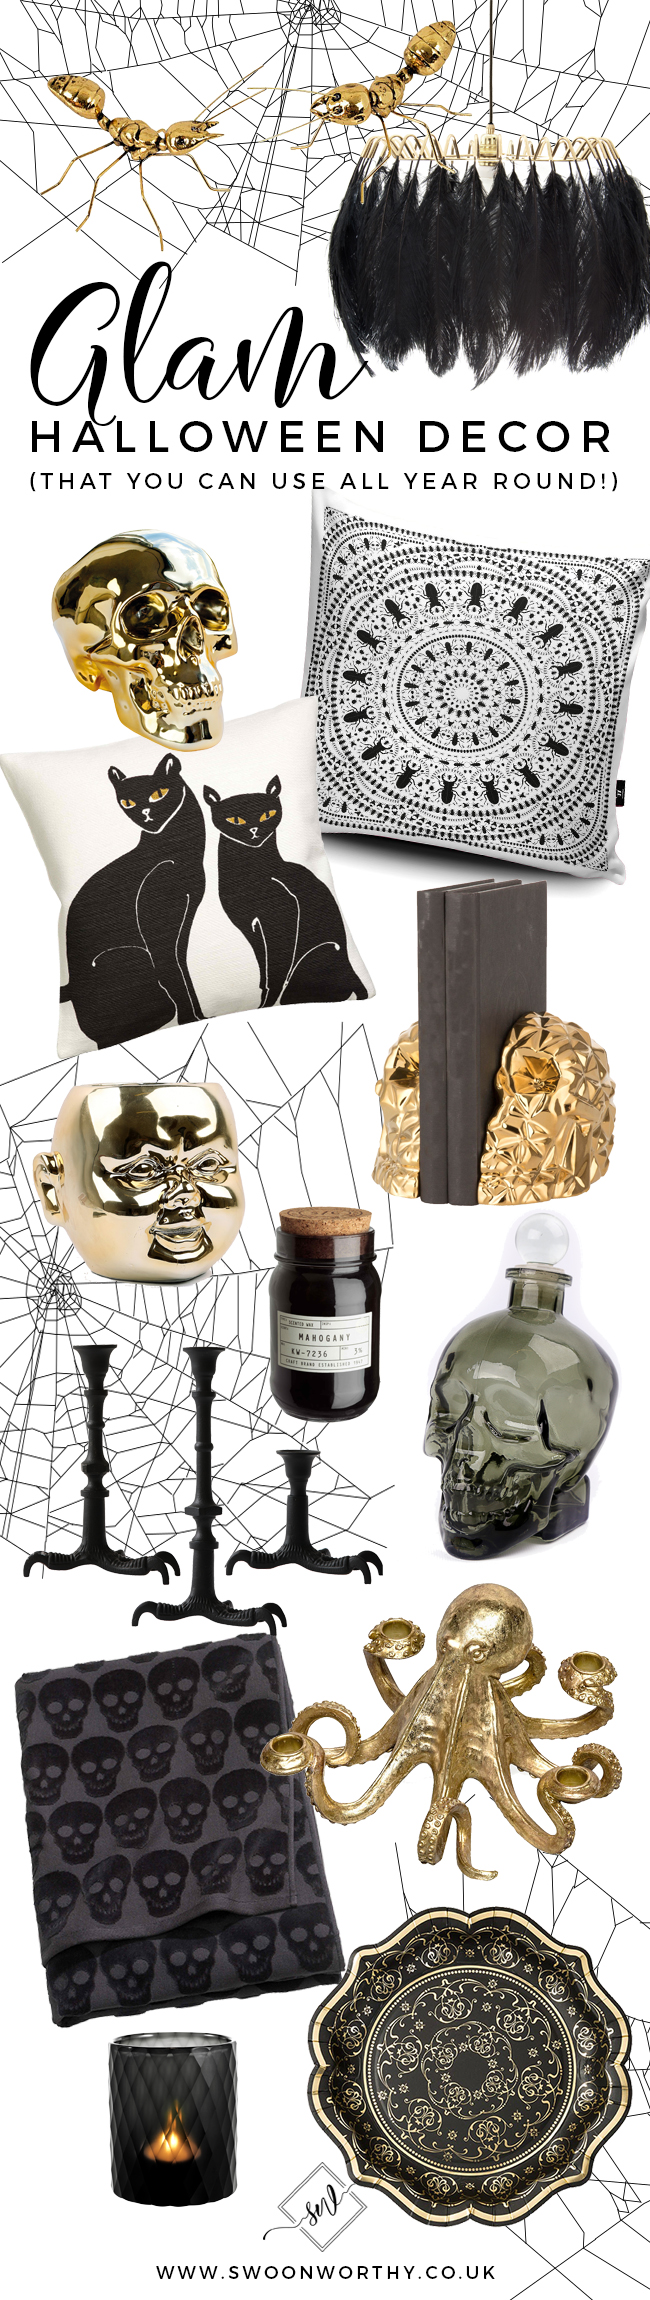 Glam Halloween Decor You Can Use All Year Round